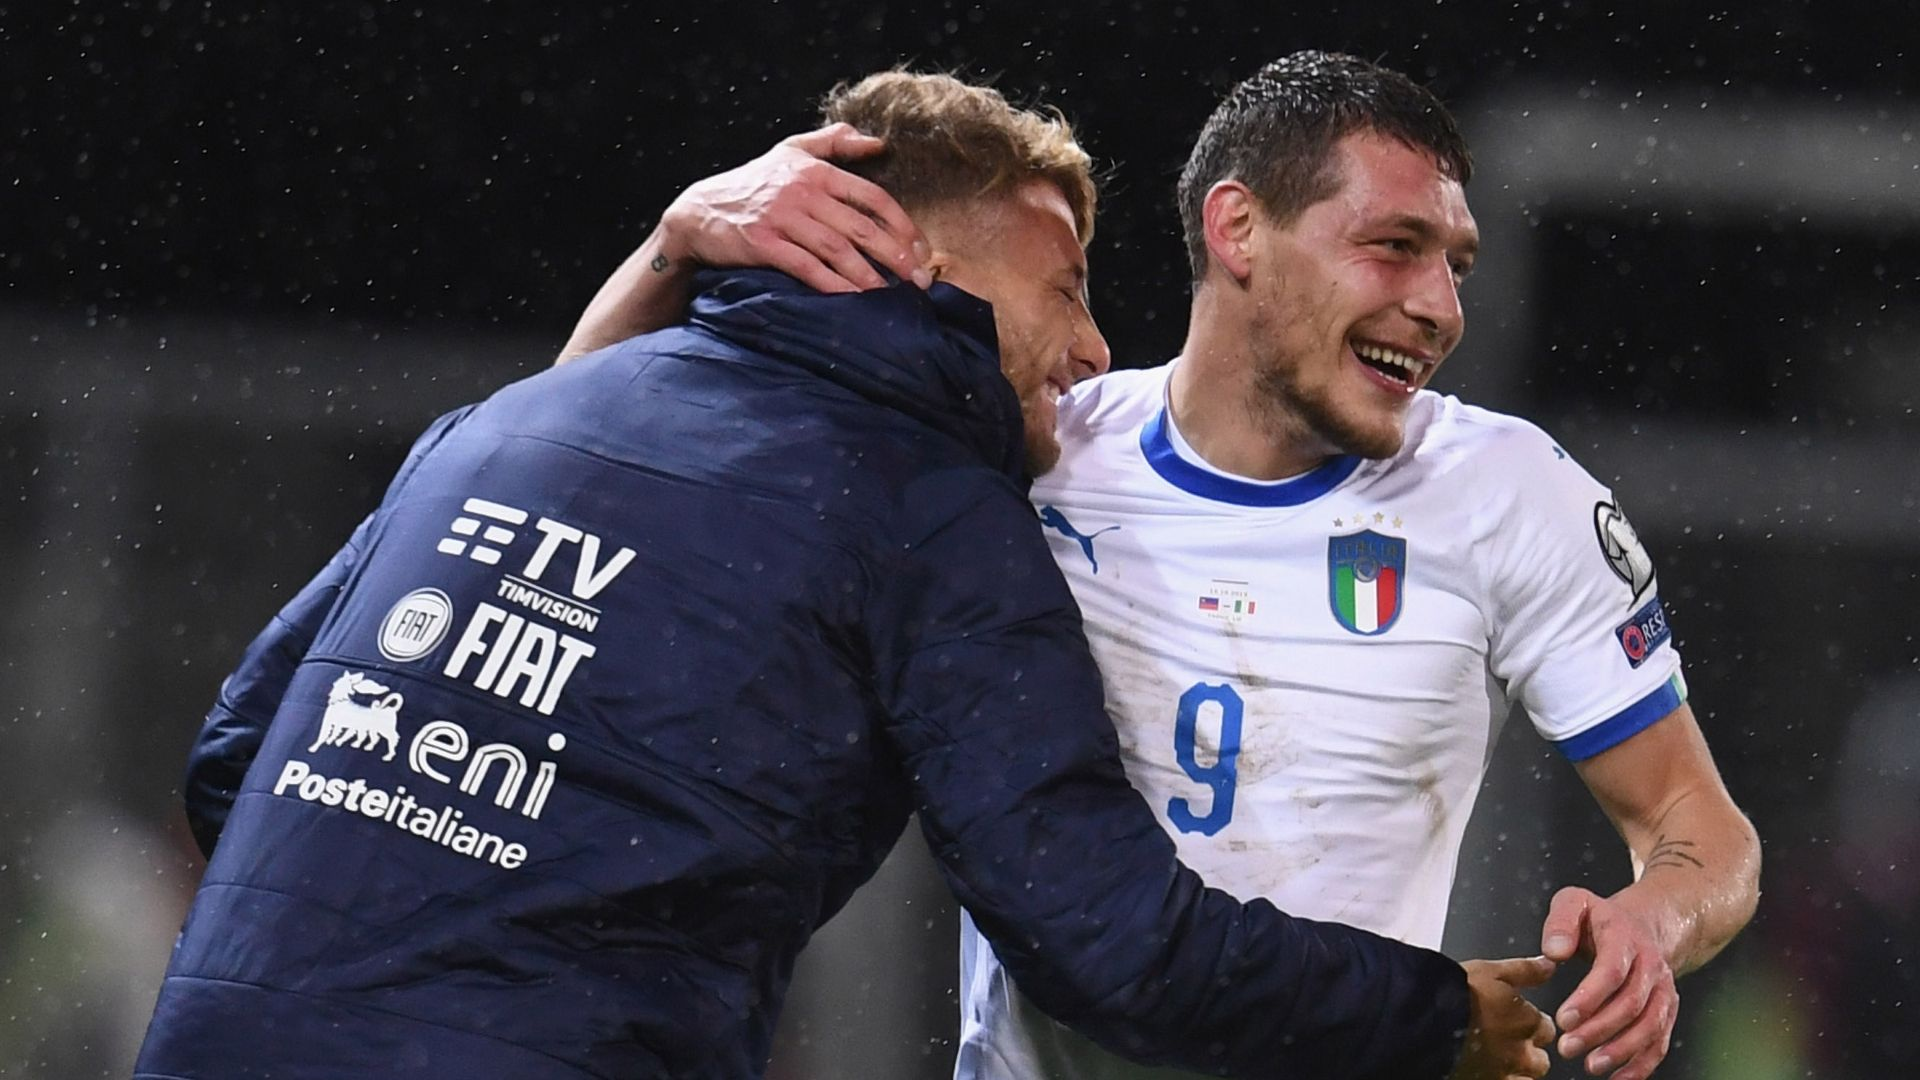 italy-dominant-again-in-perfect-qualifying-campaign